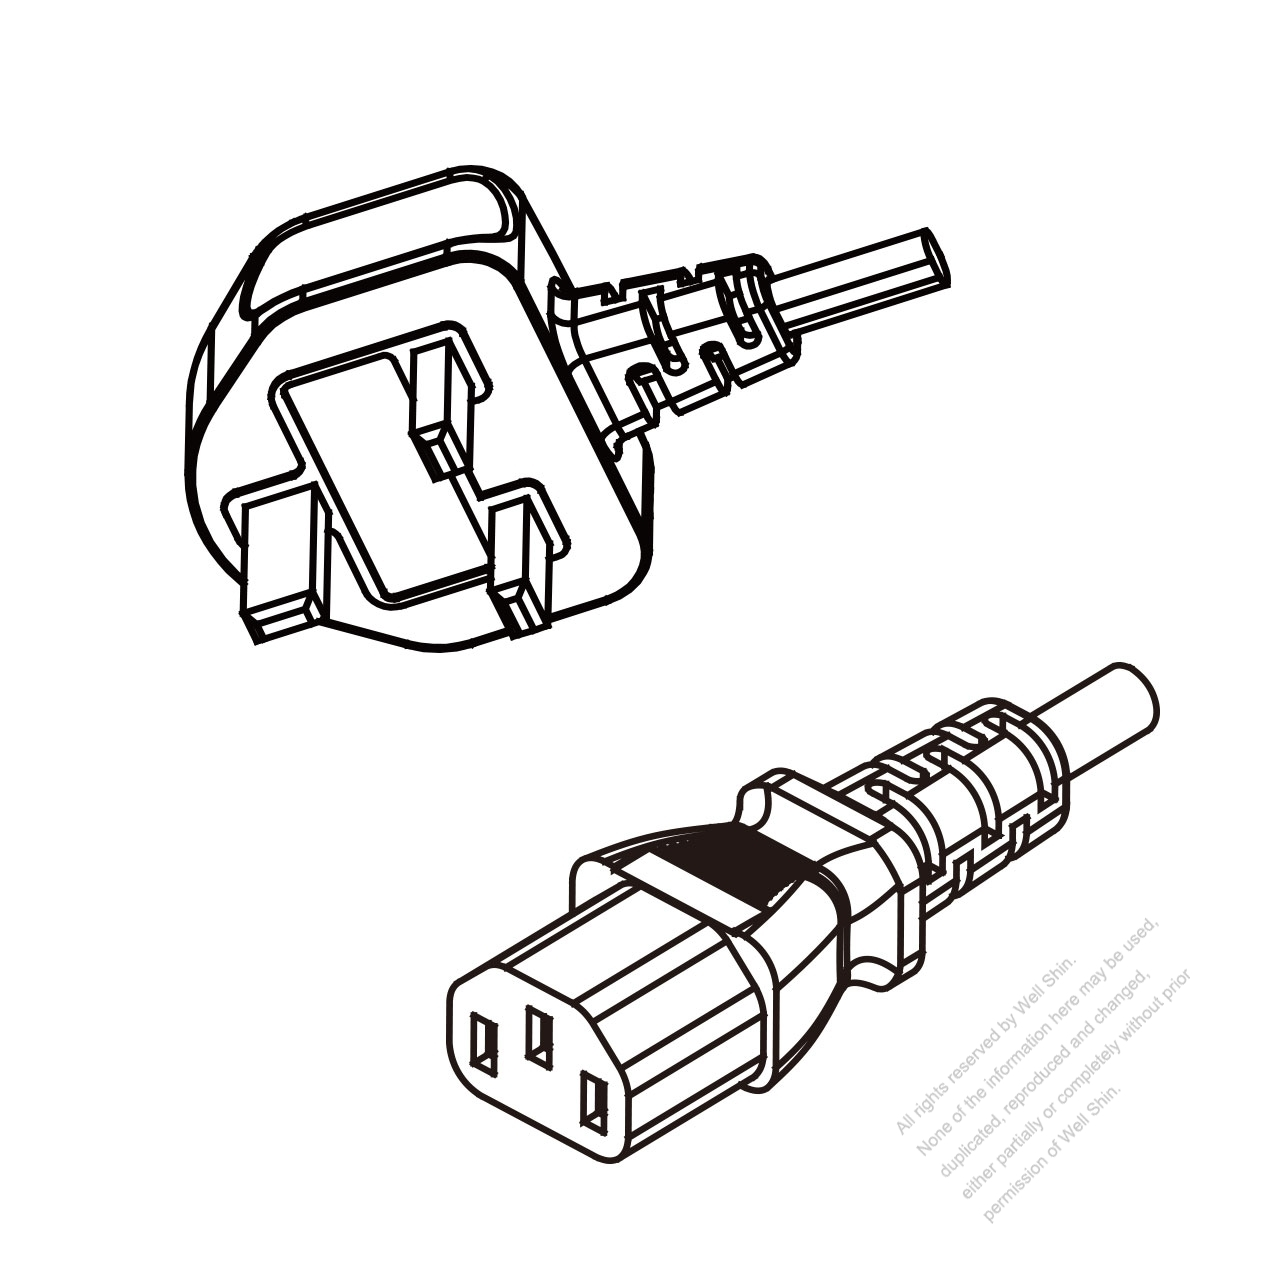 honda rancher 420 fuel pump wiring diagram